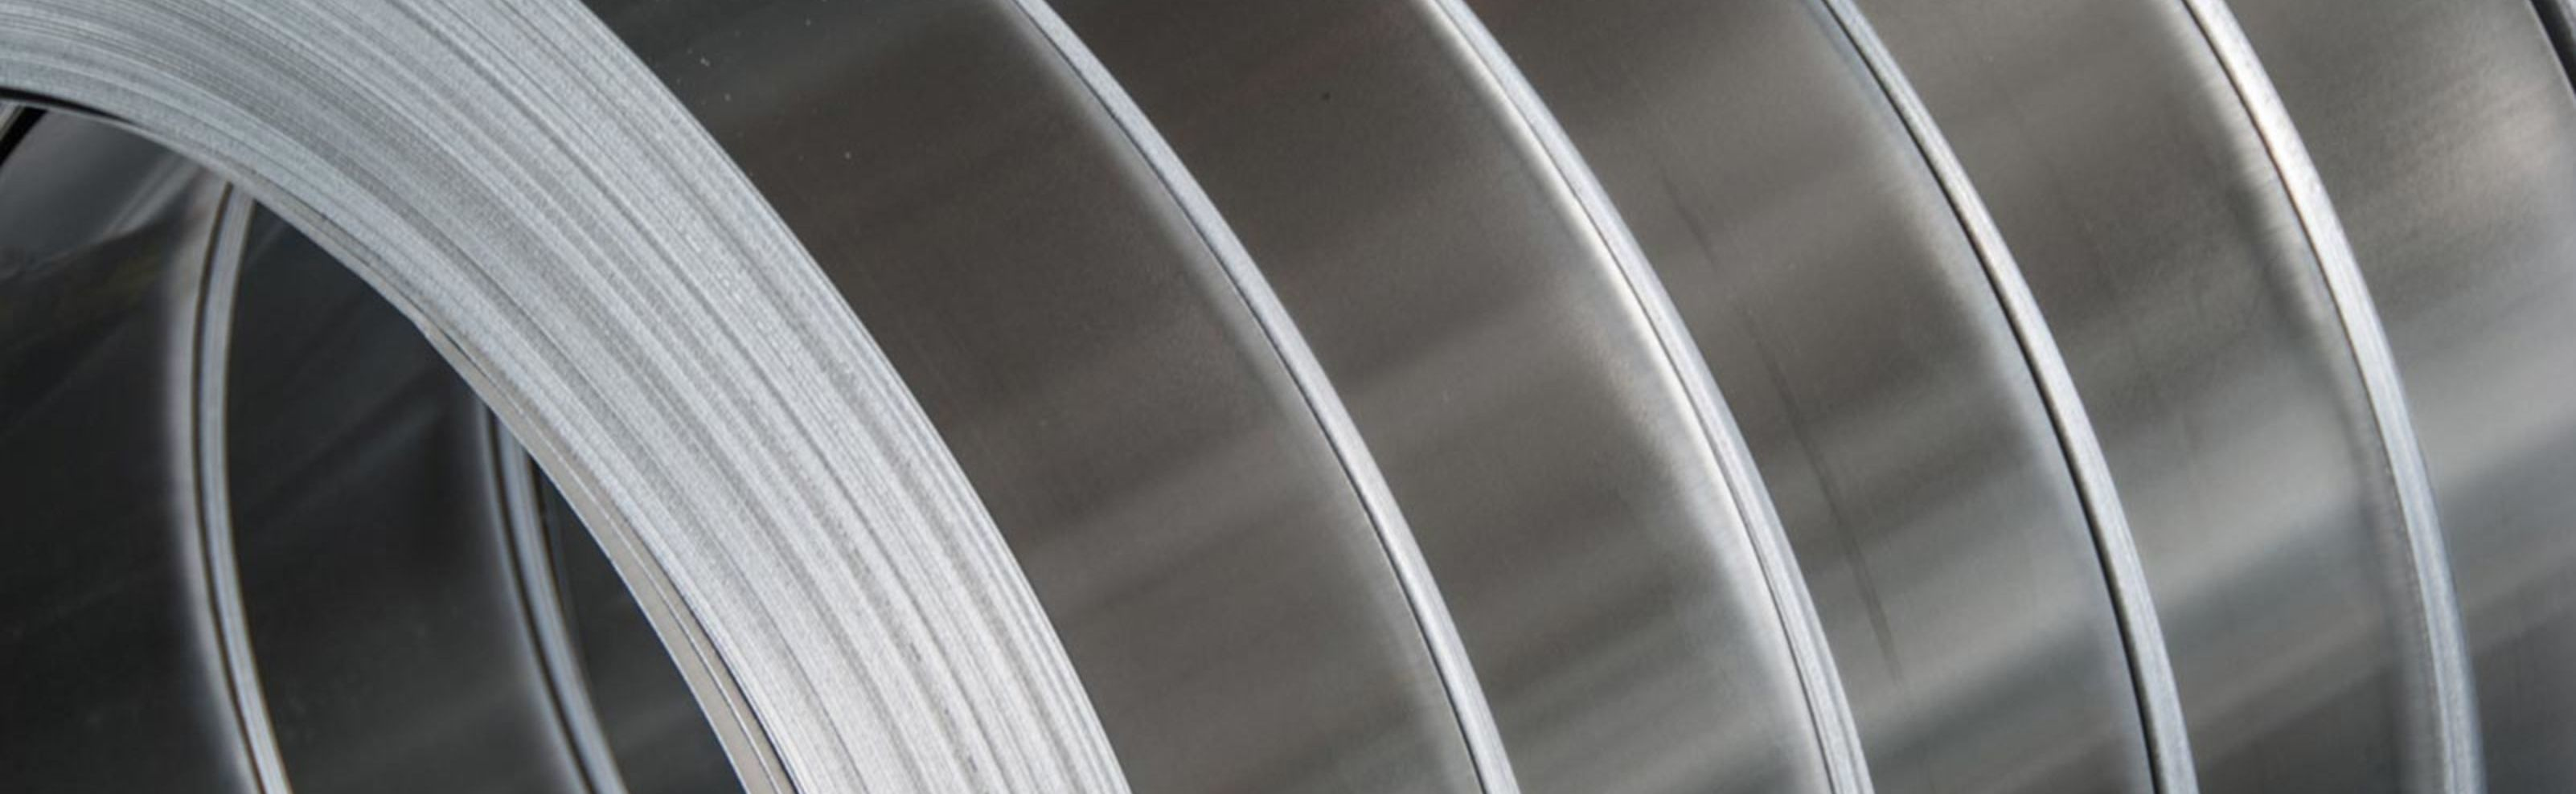 Stainless-Steel-Coil-Strip-img